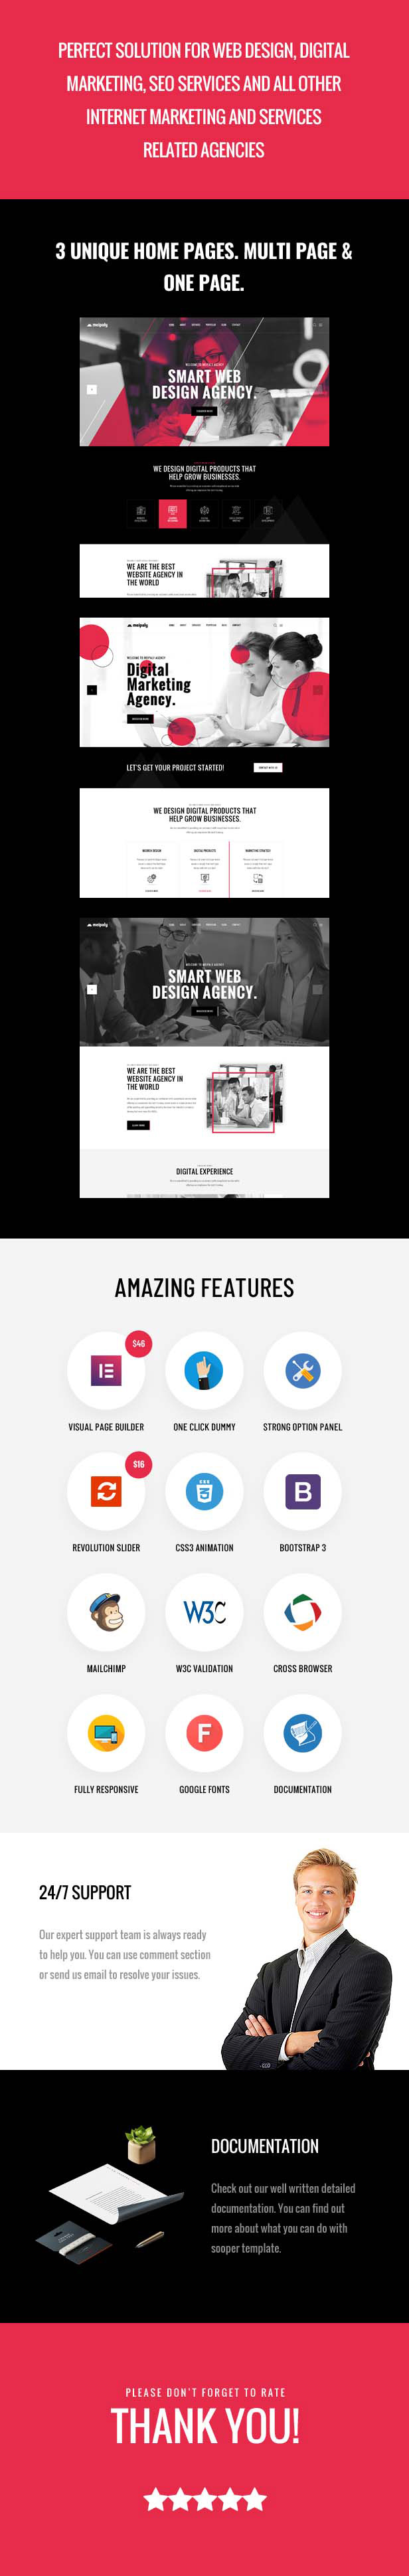 Meipaly - WordPress-Theme der Digital Services Agency